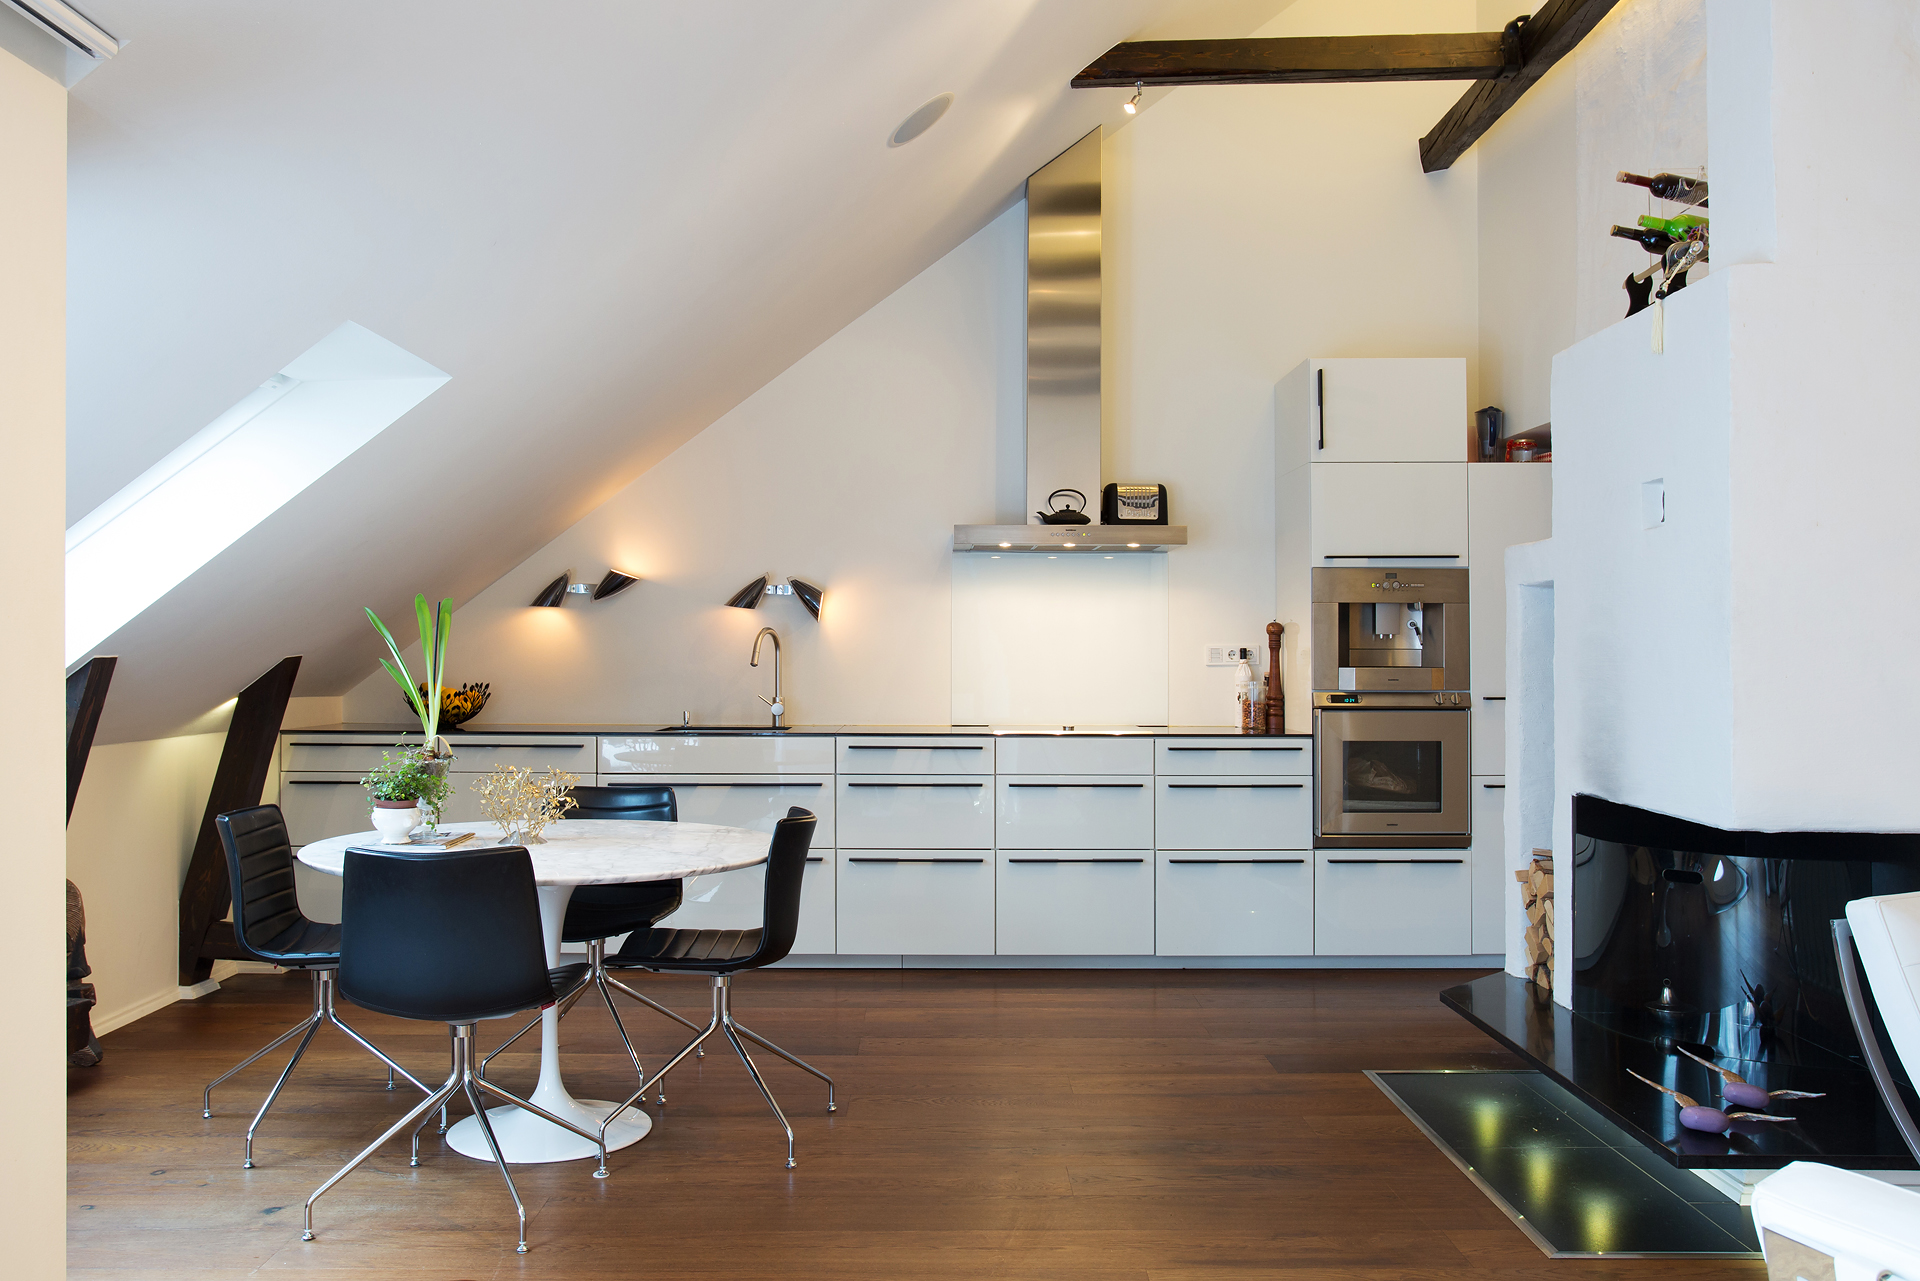 Kitchens With The Attic Appeal